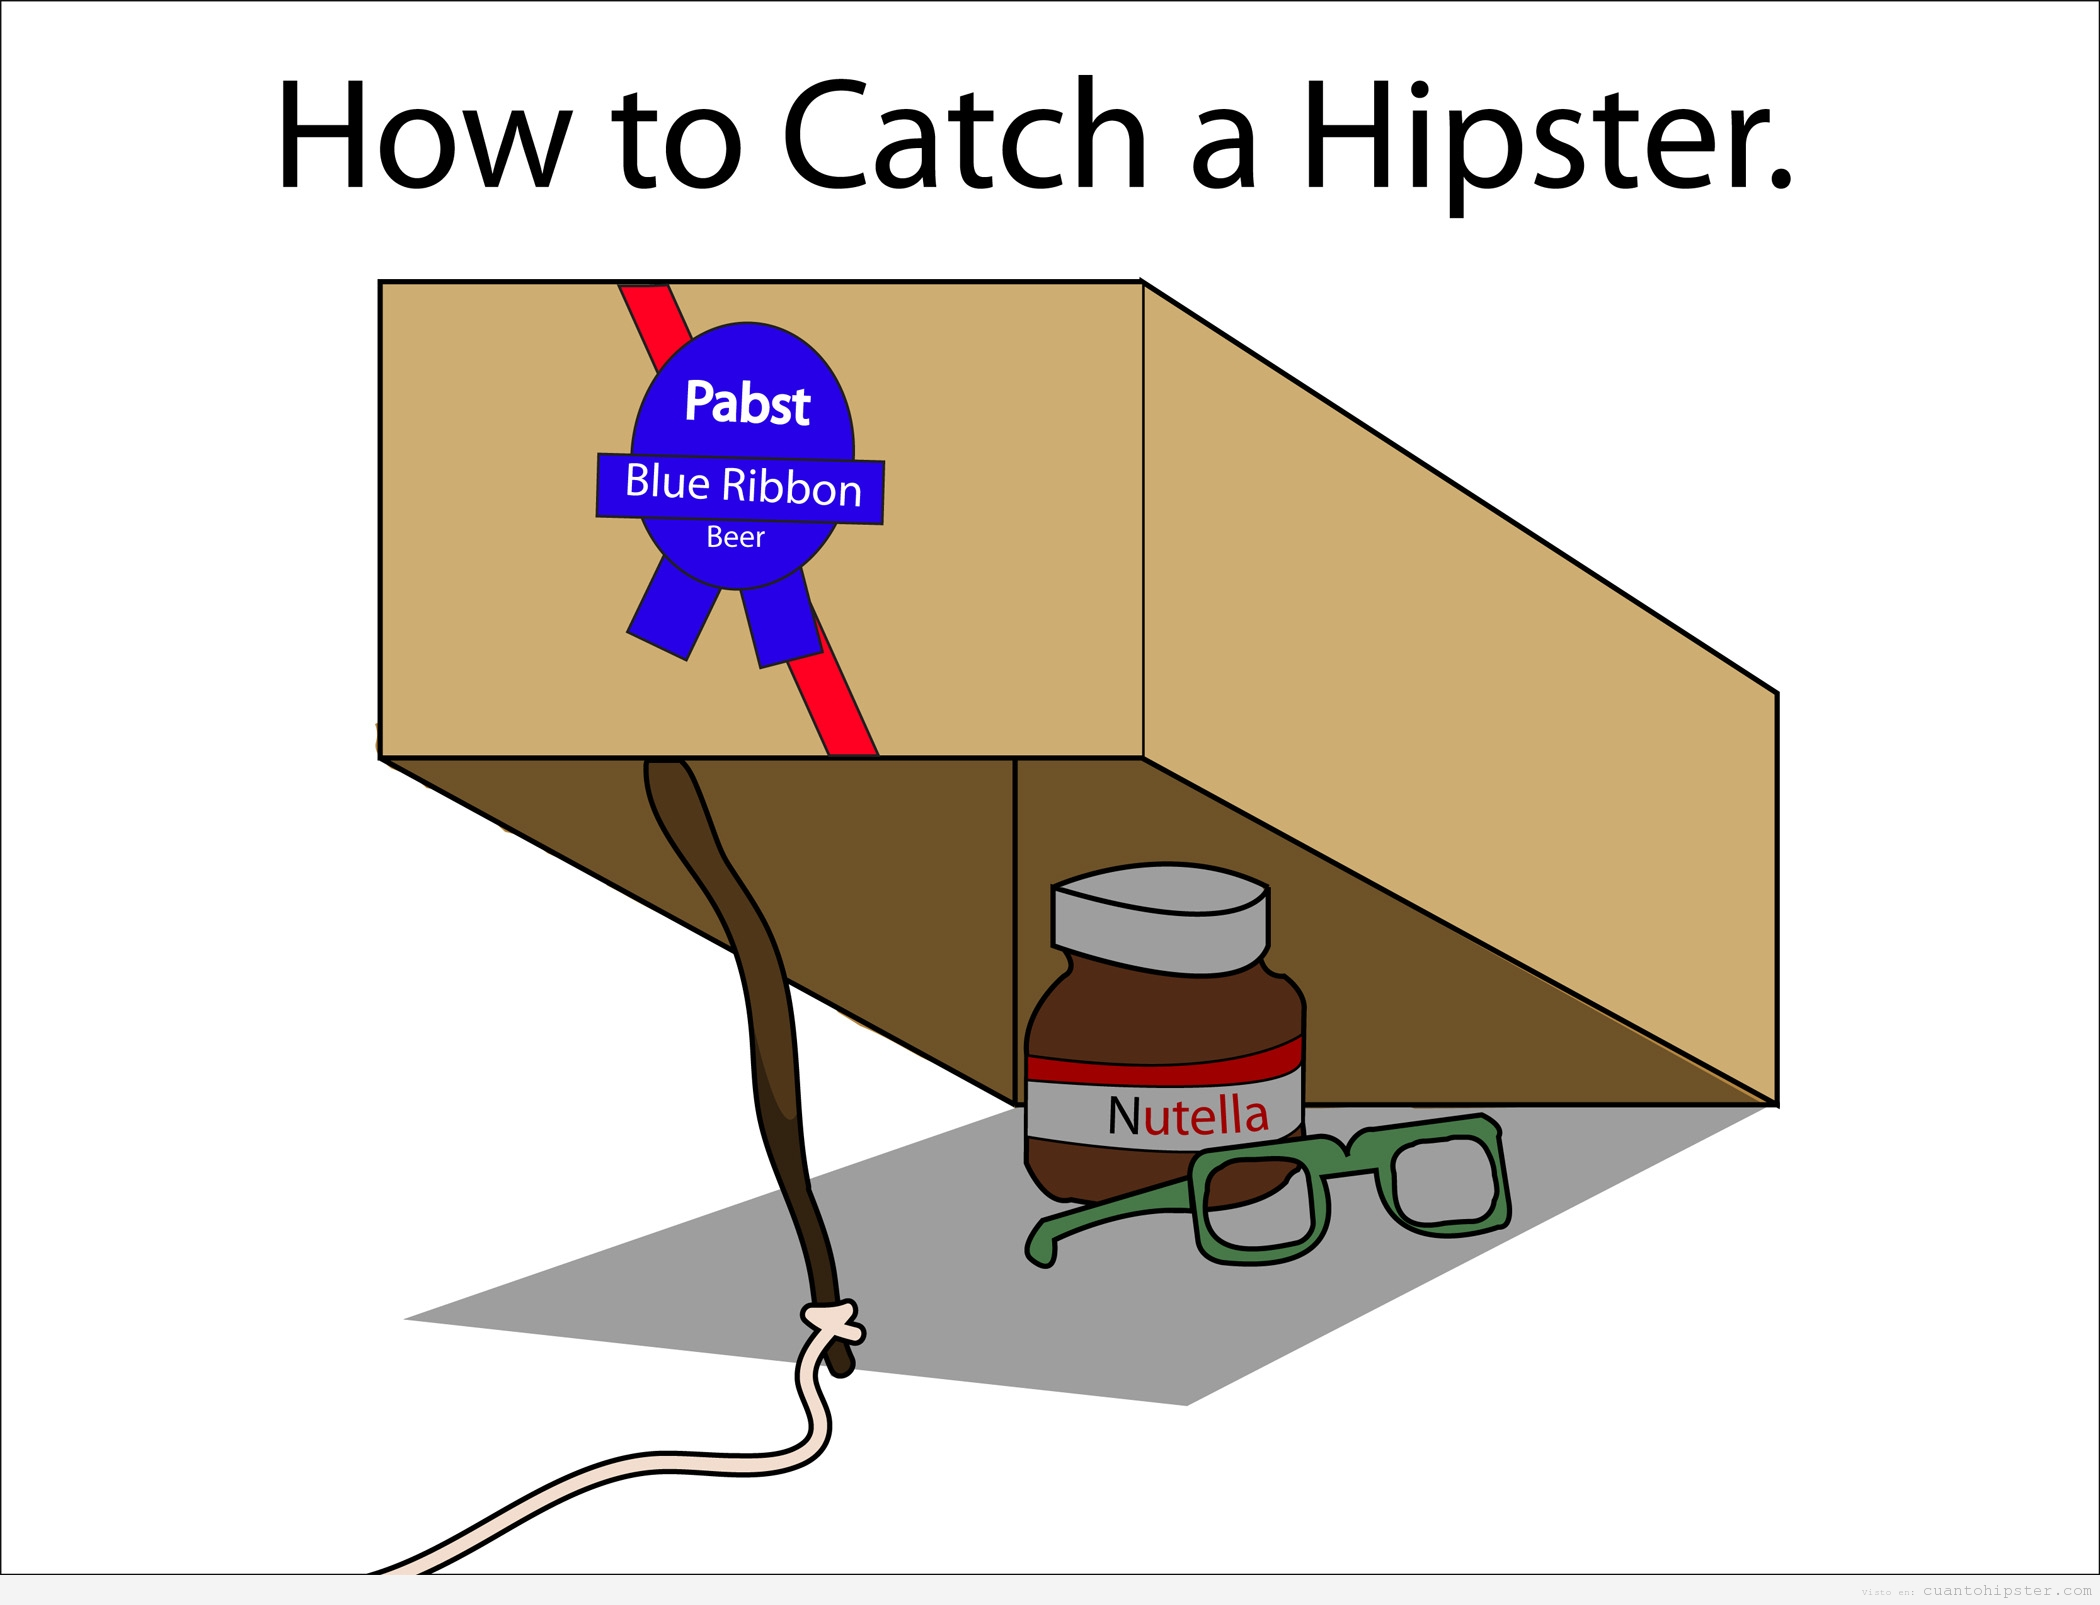 http://cuantohipster.com/wp-content/uploads/2012/08/how-to-catch-a-hipster-trampa-hipsters.jpg